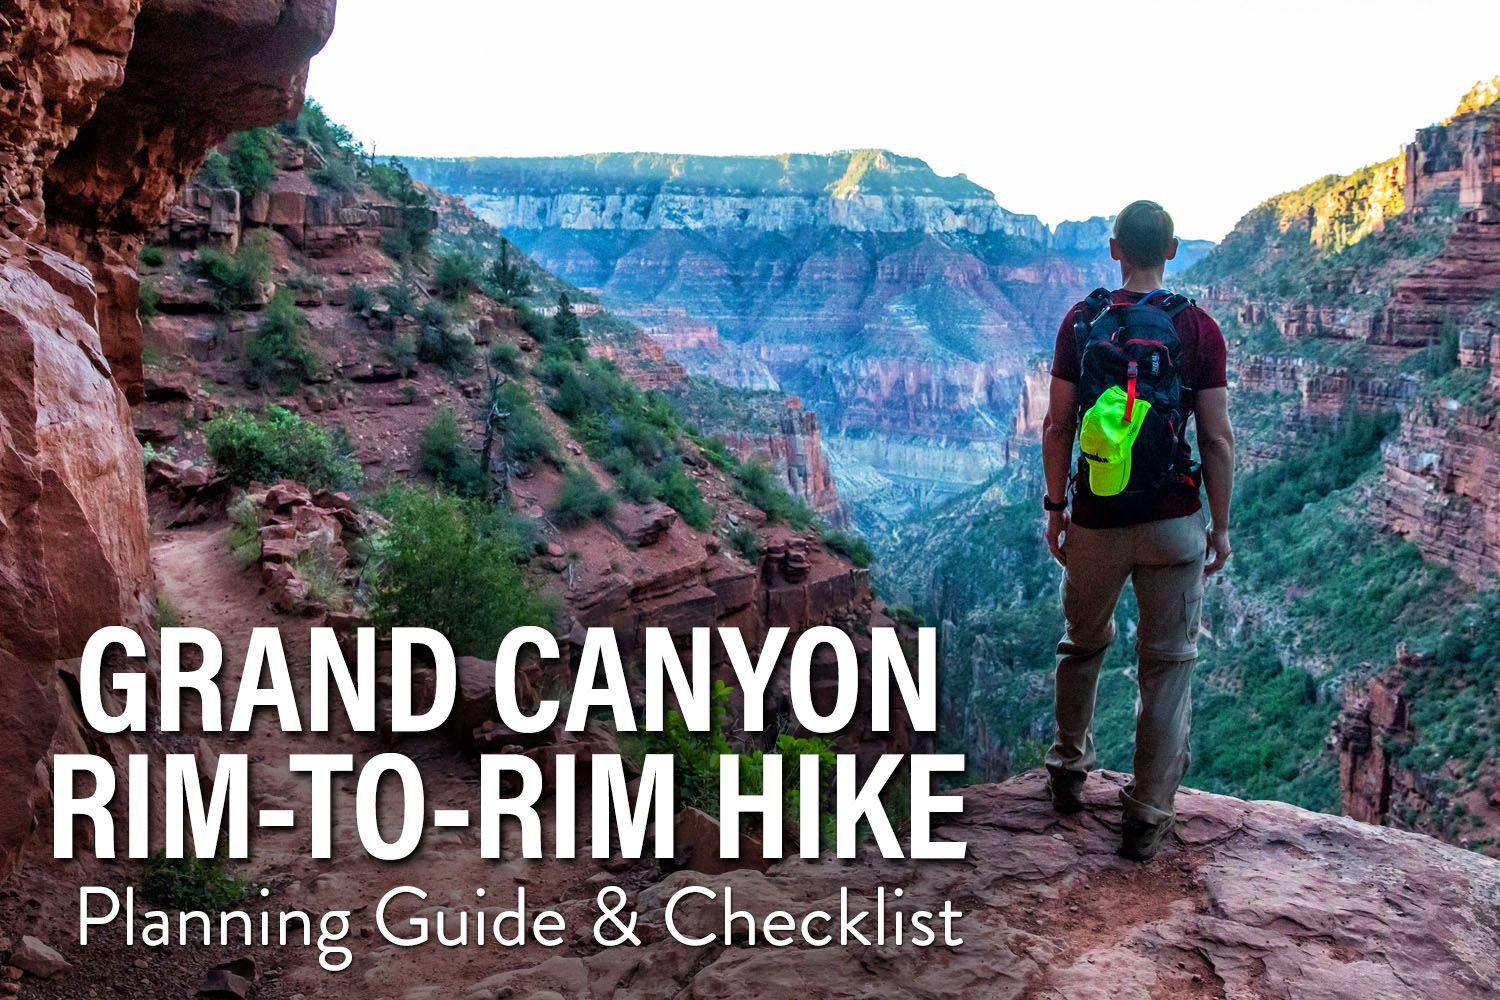 Grand Canyon Rim to Rim Guide